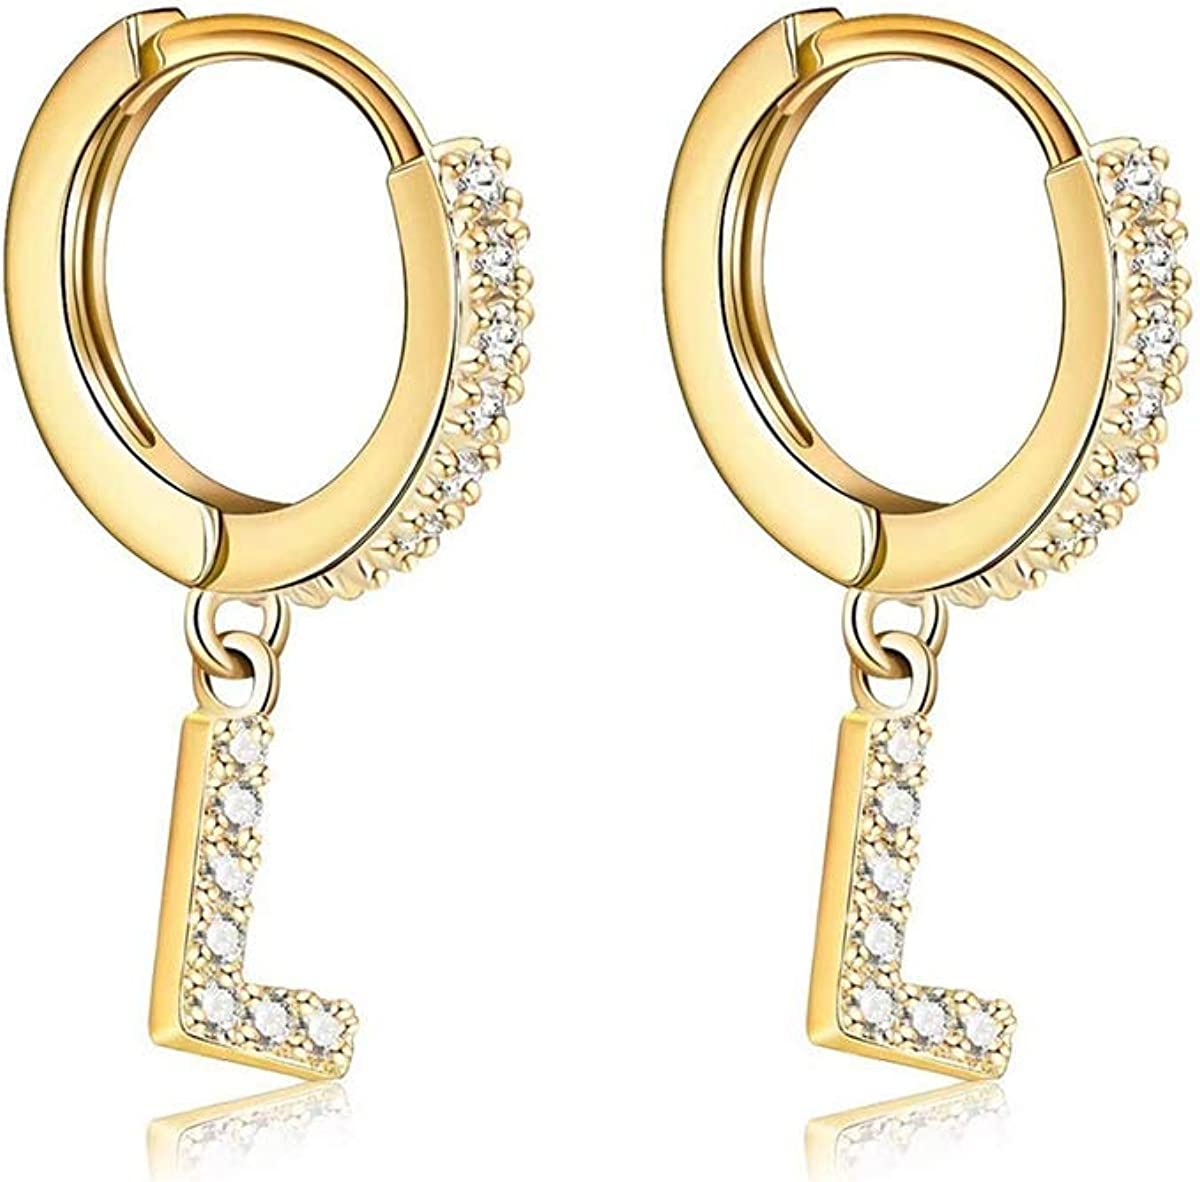 Our shop most popular 14K Gold Plated Cubic Zirconia Earrings Small Initial Ranking TOP17 Delicate H